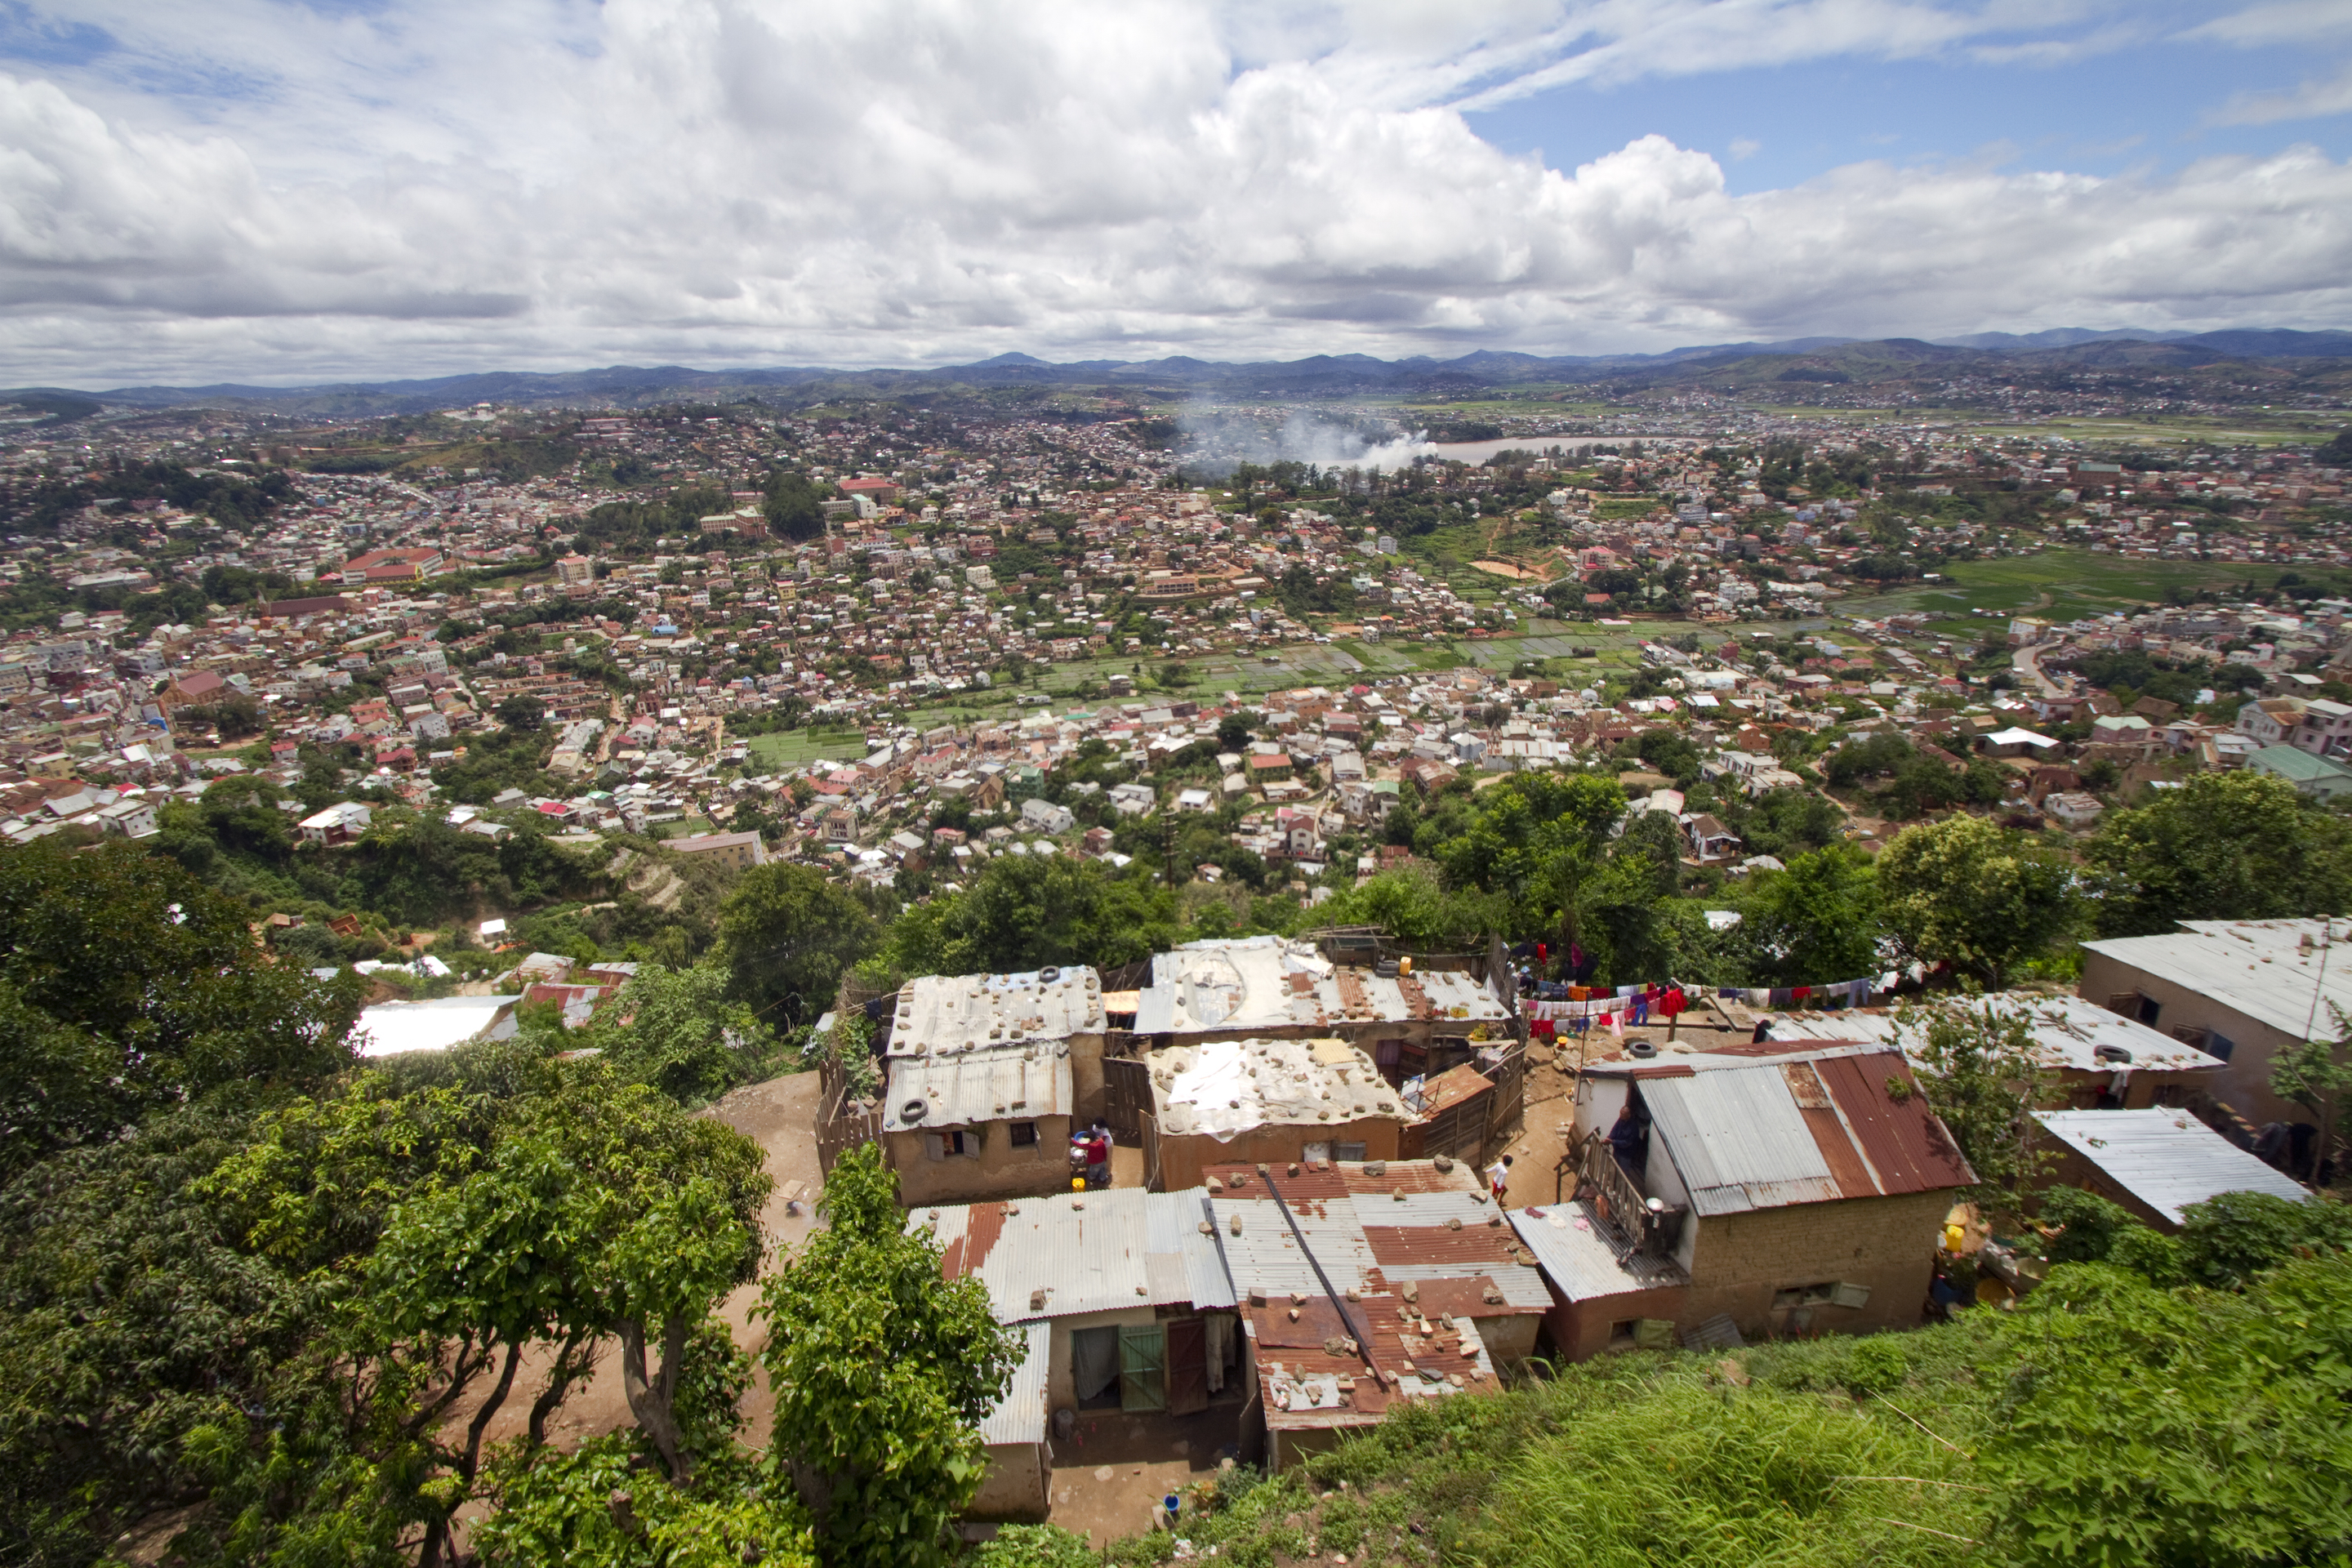 Antananarivo is the capital and largest city in Madagascar. (Photo by Thomas Cox)